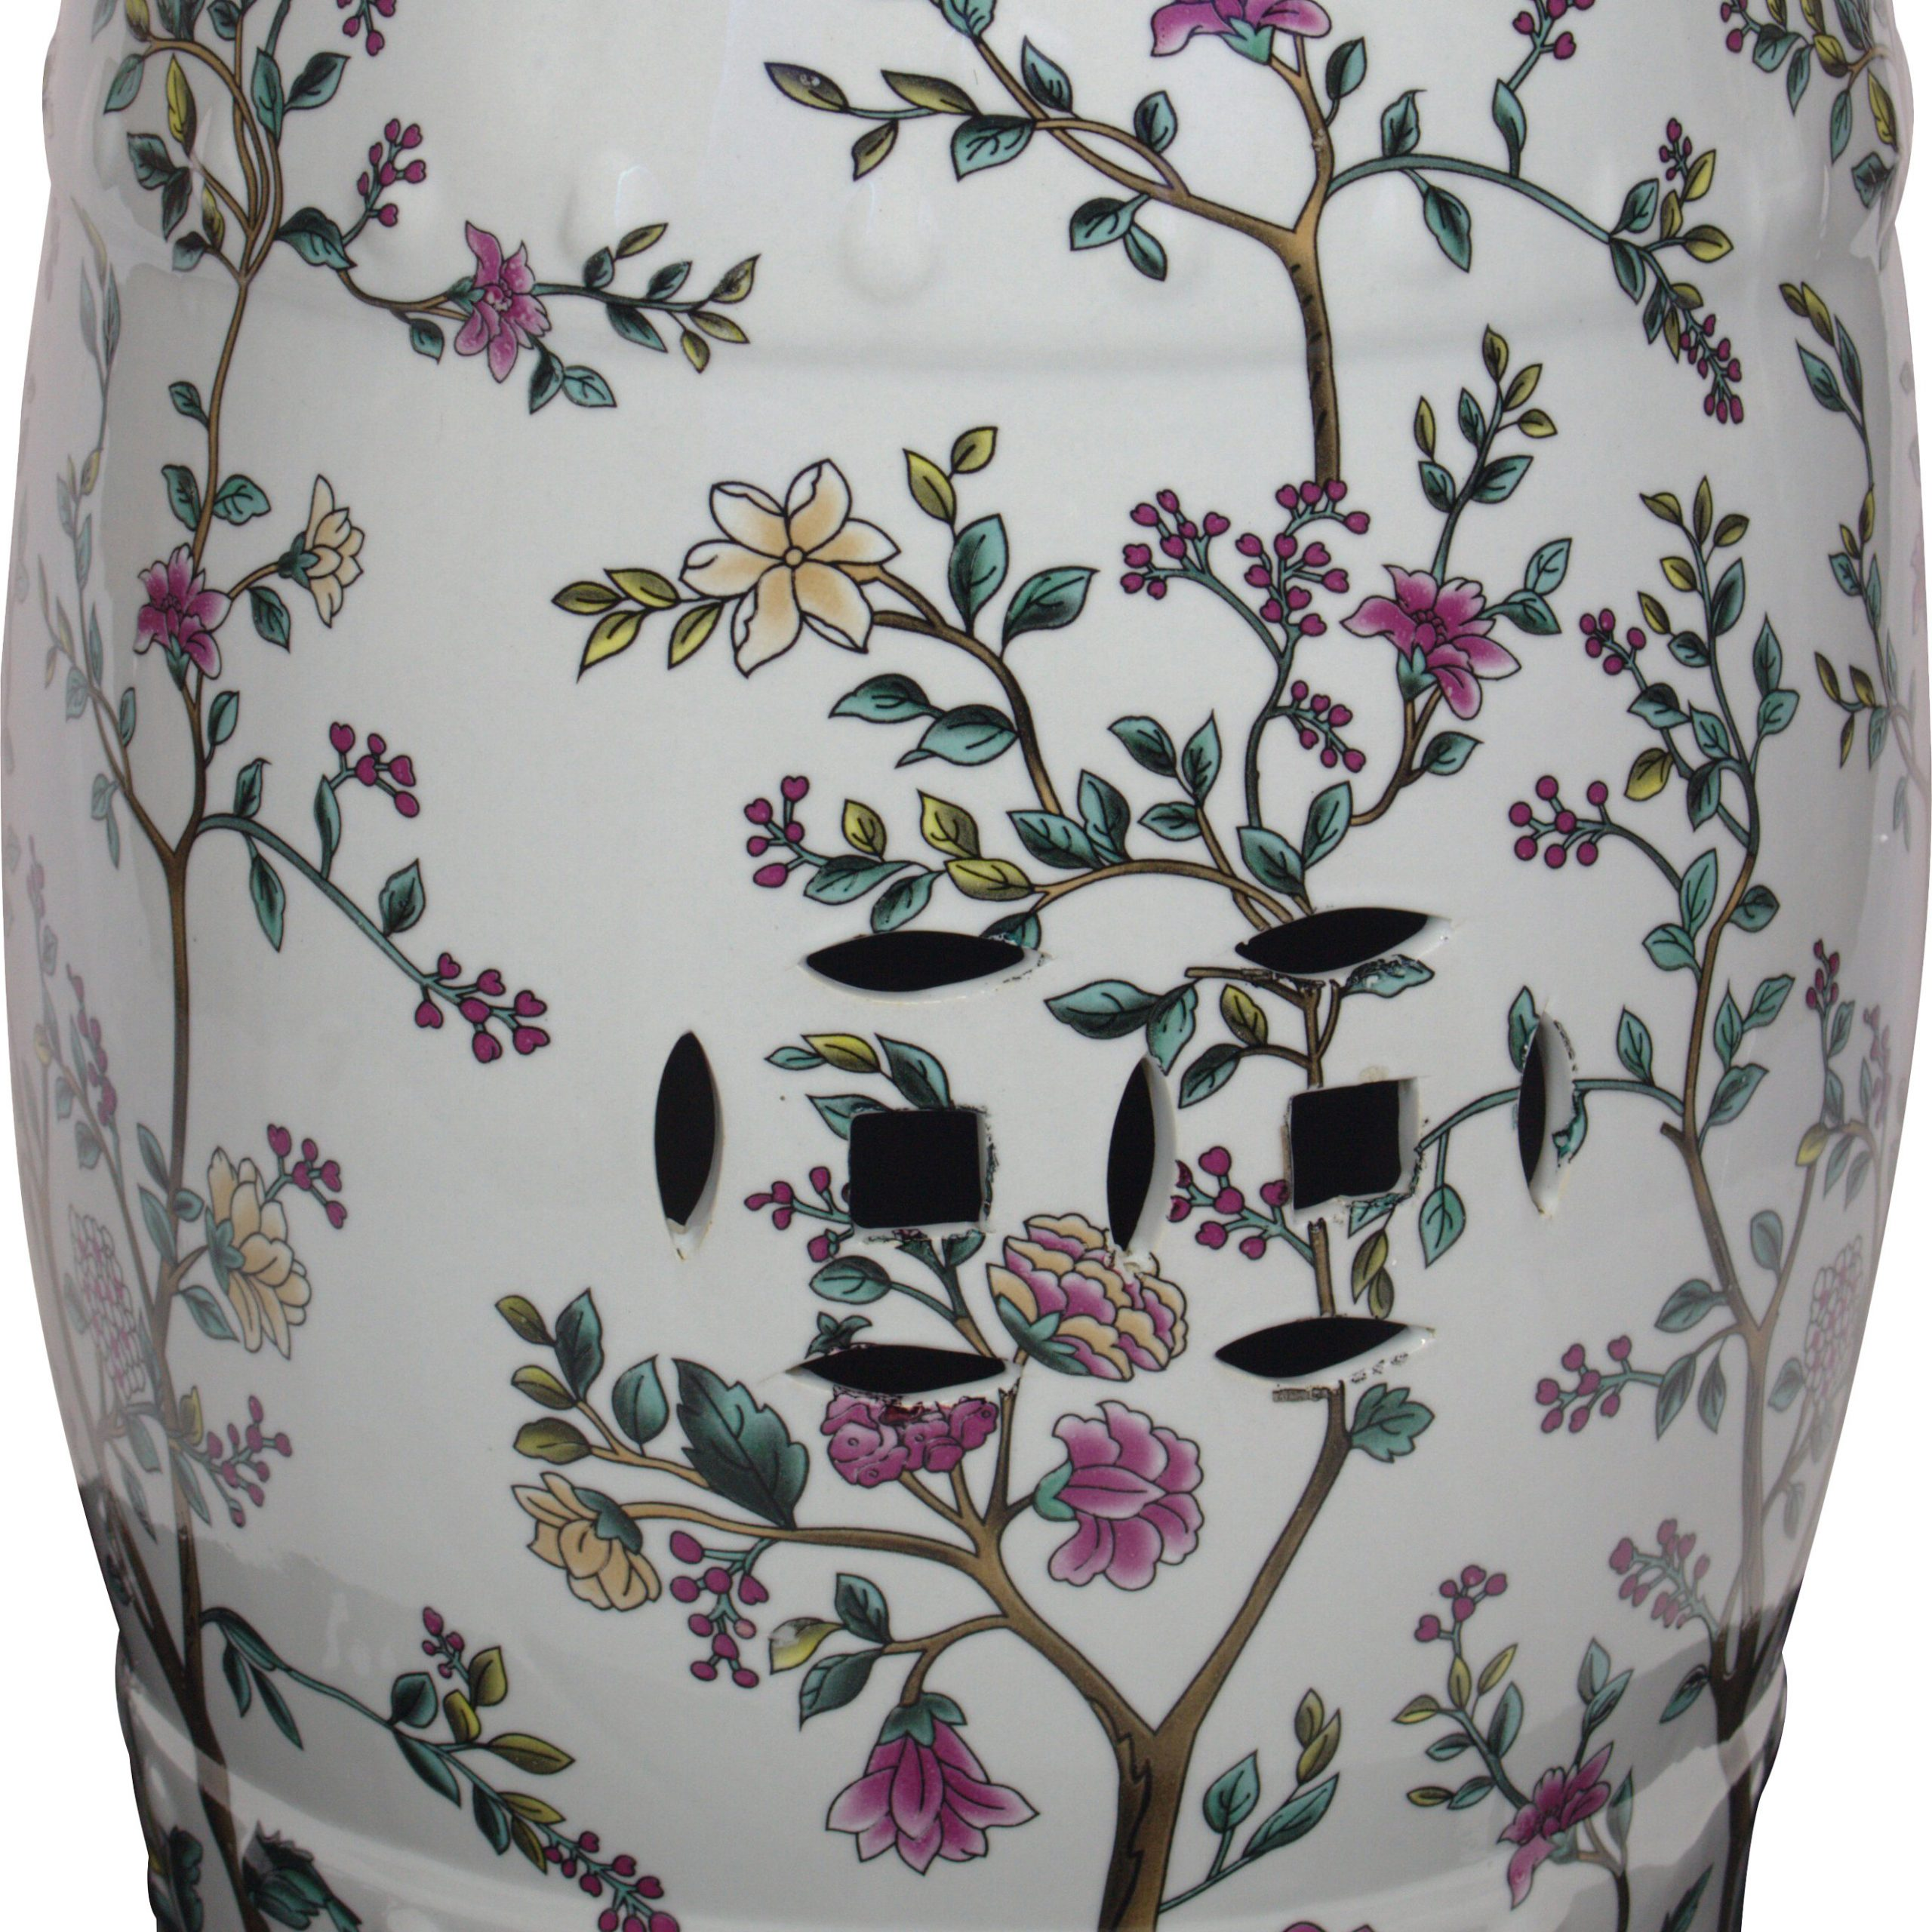 Janke Floral Garden Stools Regarding Trendy End Tables Bedroom Accent Stools (View 16 of 30)